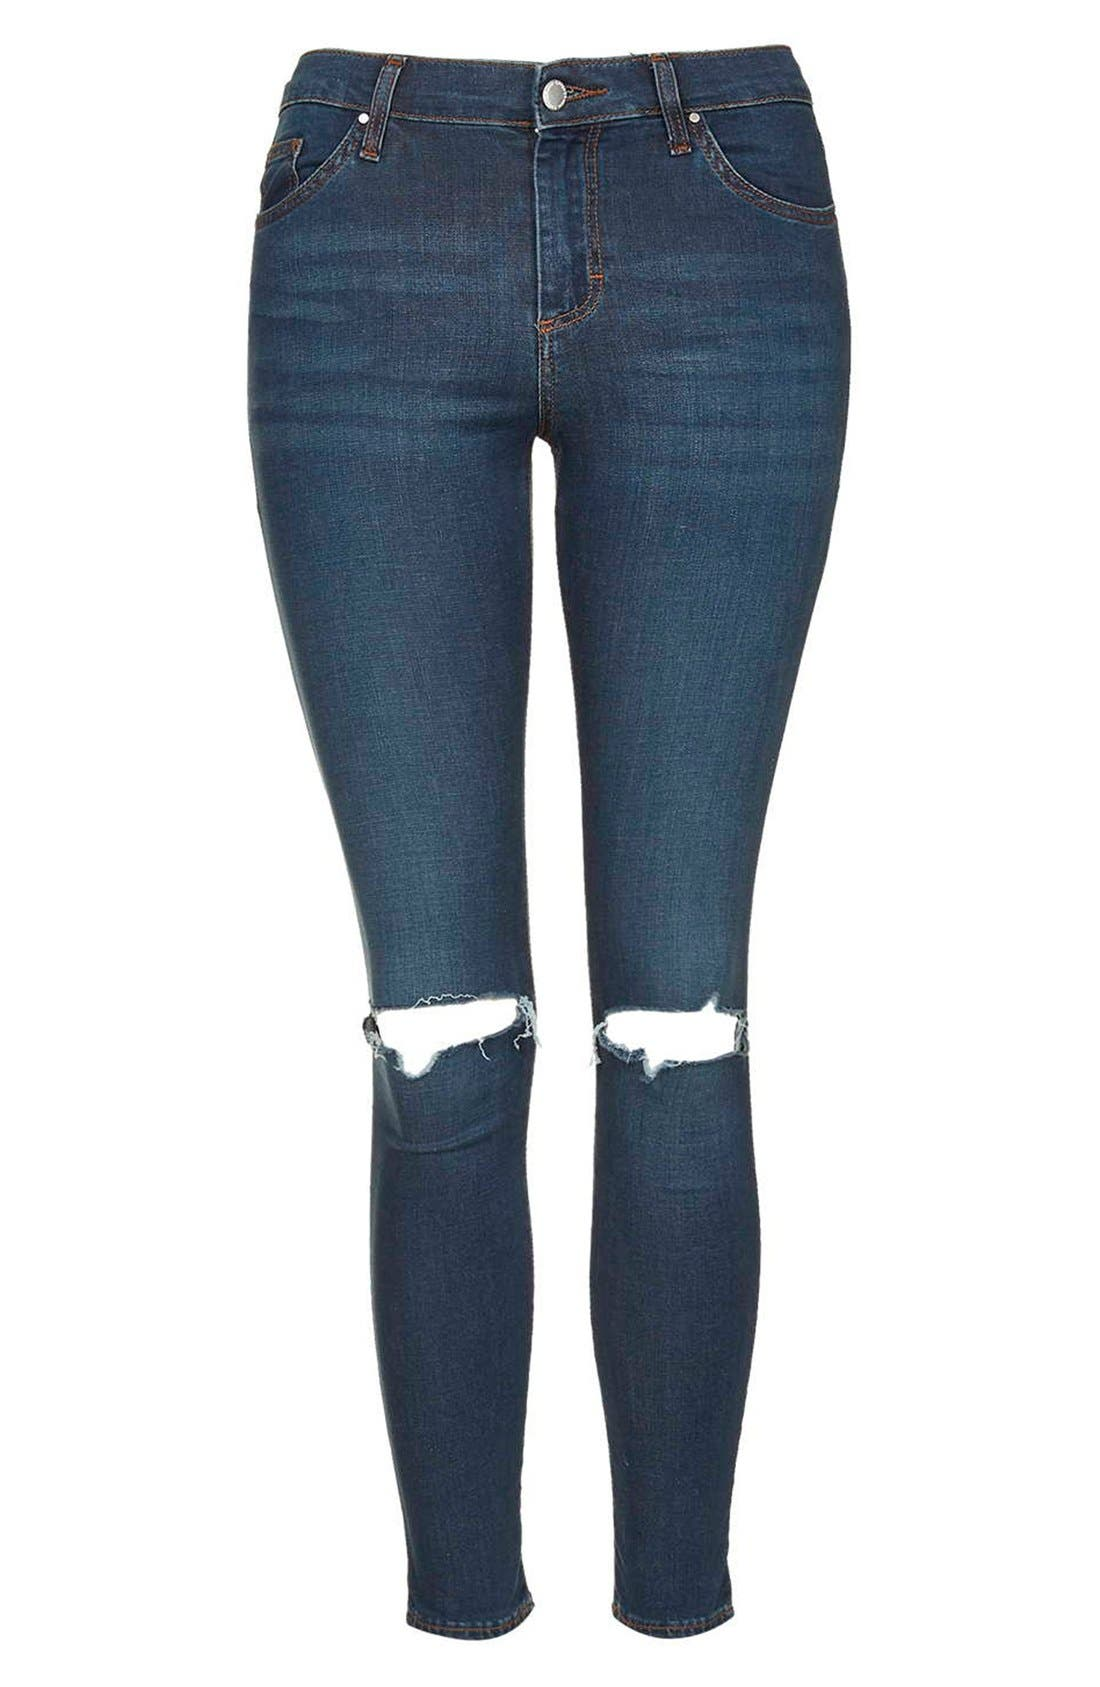 Alternate Image 4  - Topshop 'Leigh' Vintage Ripped Jeans (Petite)